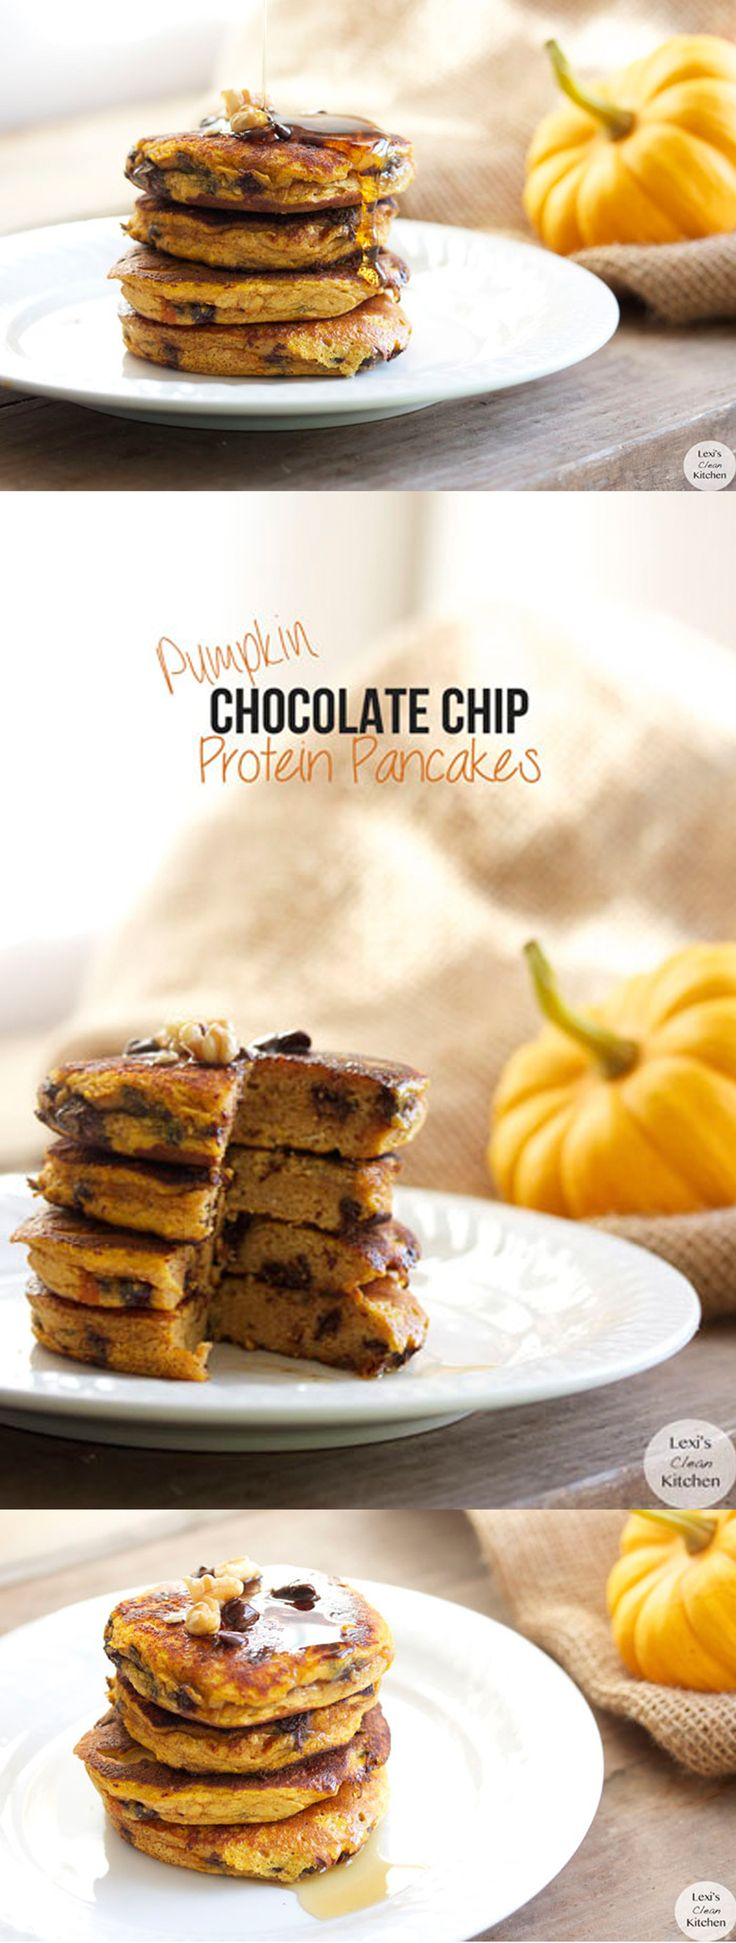 Chocolate Chip Pumpkin Protein Pancakes #glutenfree #dairyfree #paleo 1/3 cup pumpkin purée 2 tbsp coconut flour 1/4 tsp baking powder 1/4 tsp cinnamon 1/4 tsp pumpkin spice 3 tbsp chocolate chips 1 heaping scoop SFH grass-fed whey vanilla protein powder, Use code LEXI for 10% off all products 1/2 tsp organic vanilla extract 2 organic eggs Optional: 1 tbsp raw organic honey Instructions 1. In a bowl combine all ingredients 2. Spray large skillet 3. Pour batter & cook over medium/low heat